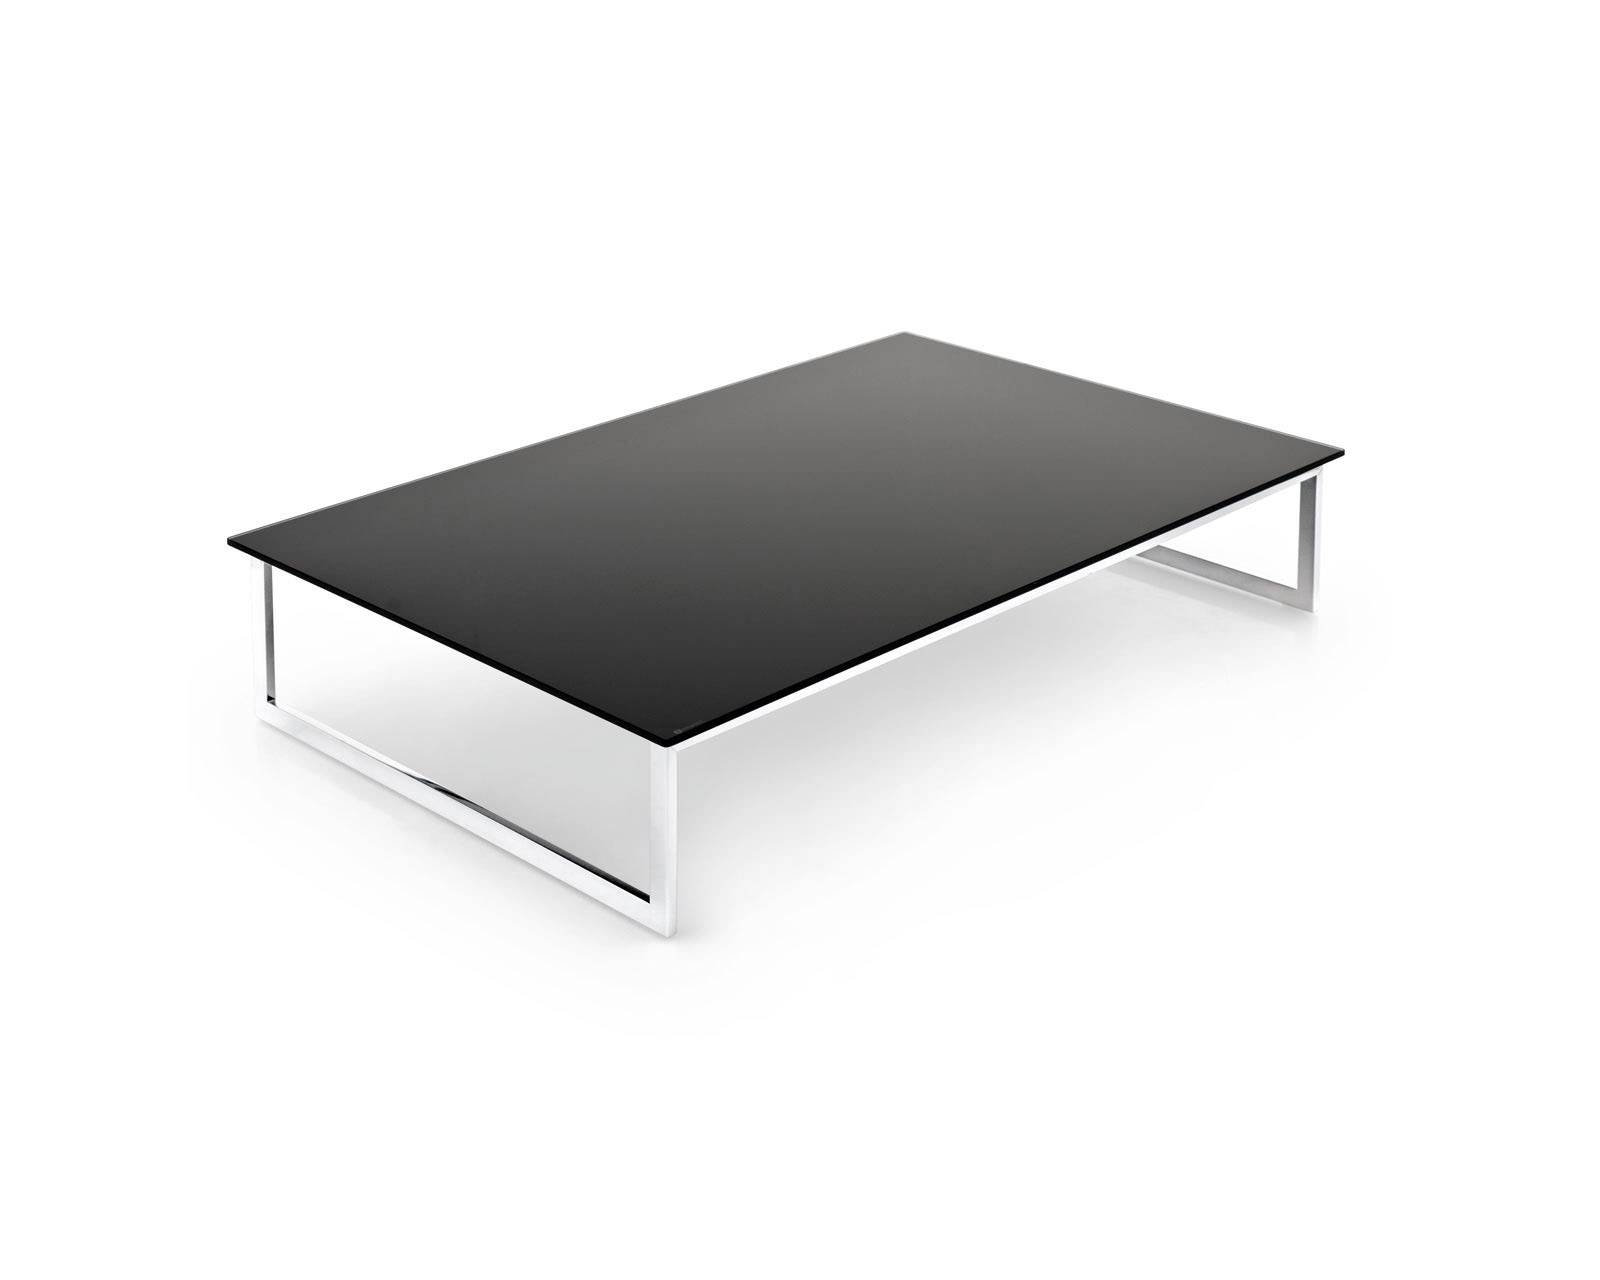 Endless Rectangular Low Coffee Table - Calligaris Cs/5079-Mv 130 inside Low Rectangular Coffee Tables (Image 11 of 30)